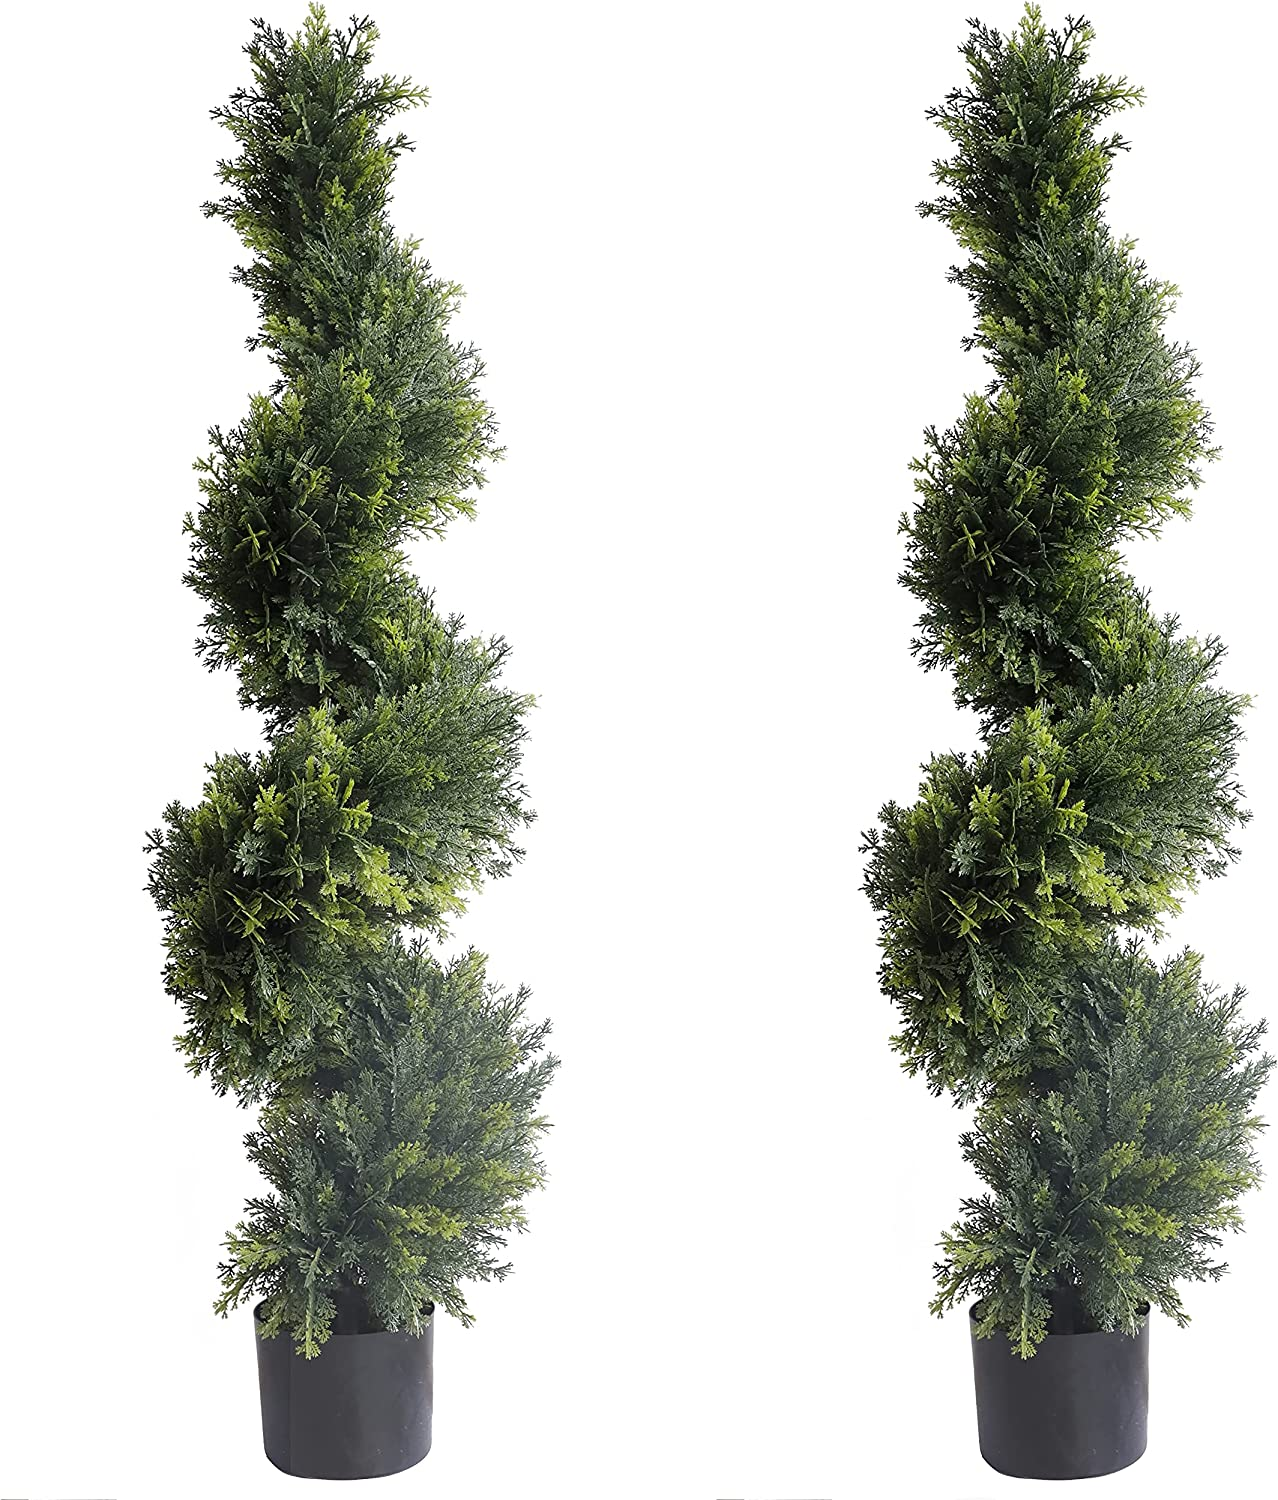 43.3 inch 3.6 ft Artificial Sales for sale trust Trees Topiary Cypress Cyp